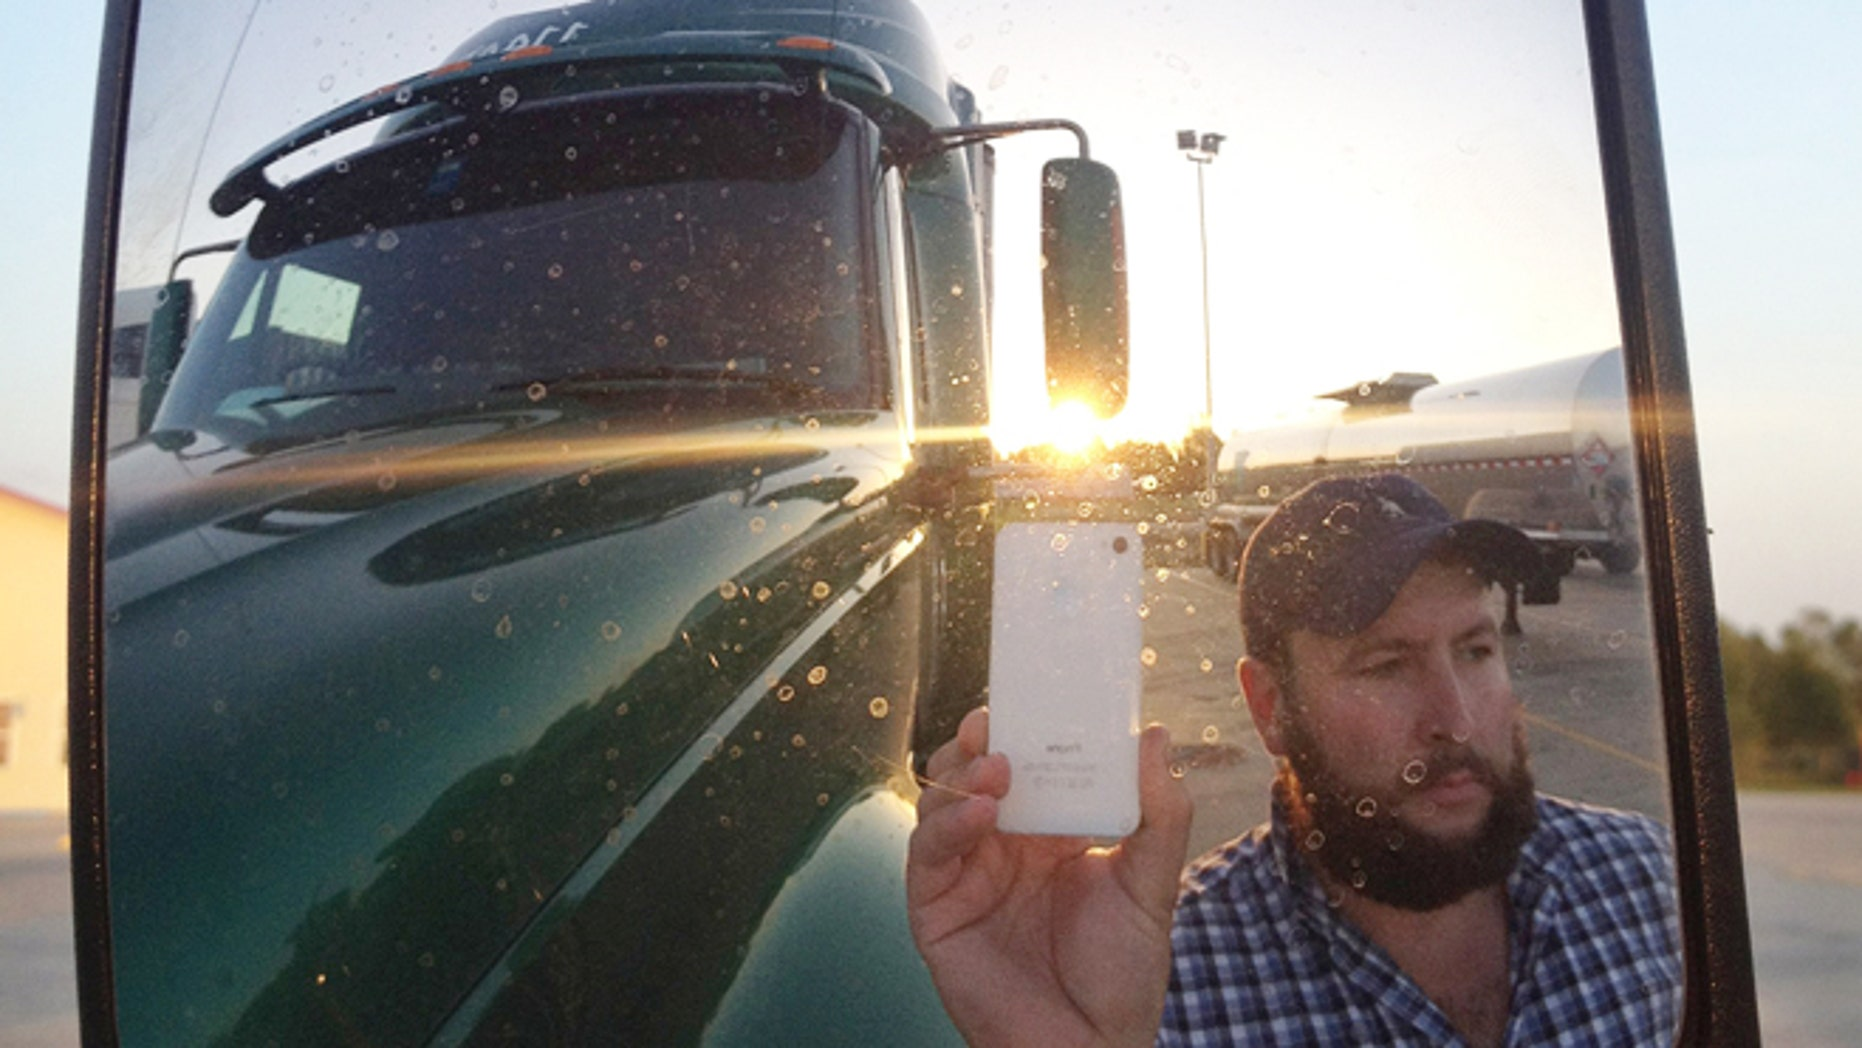 """James Weitze sleeps most of the time in his truck, and has no apartment. But he's watching Netflix enough to keep up on shows like """"Weeds,"""" """"30 Rock,"""" and Breaking Bad."""""""